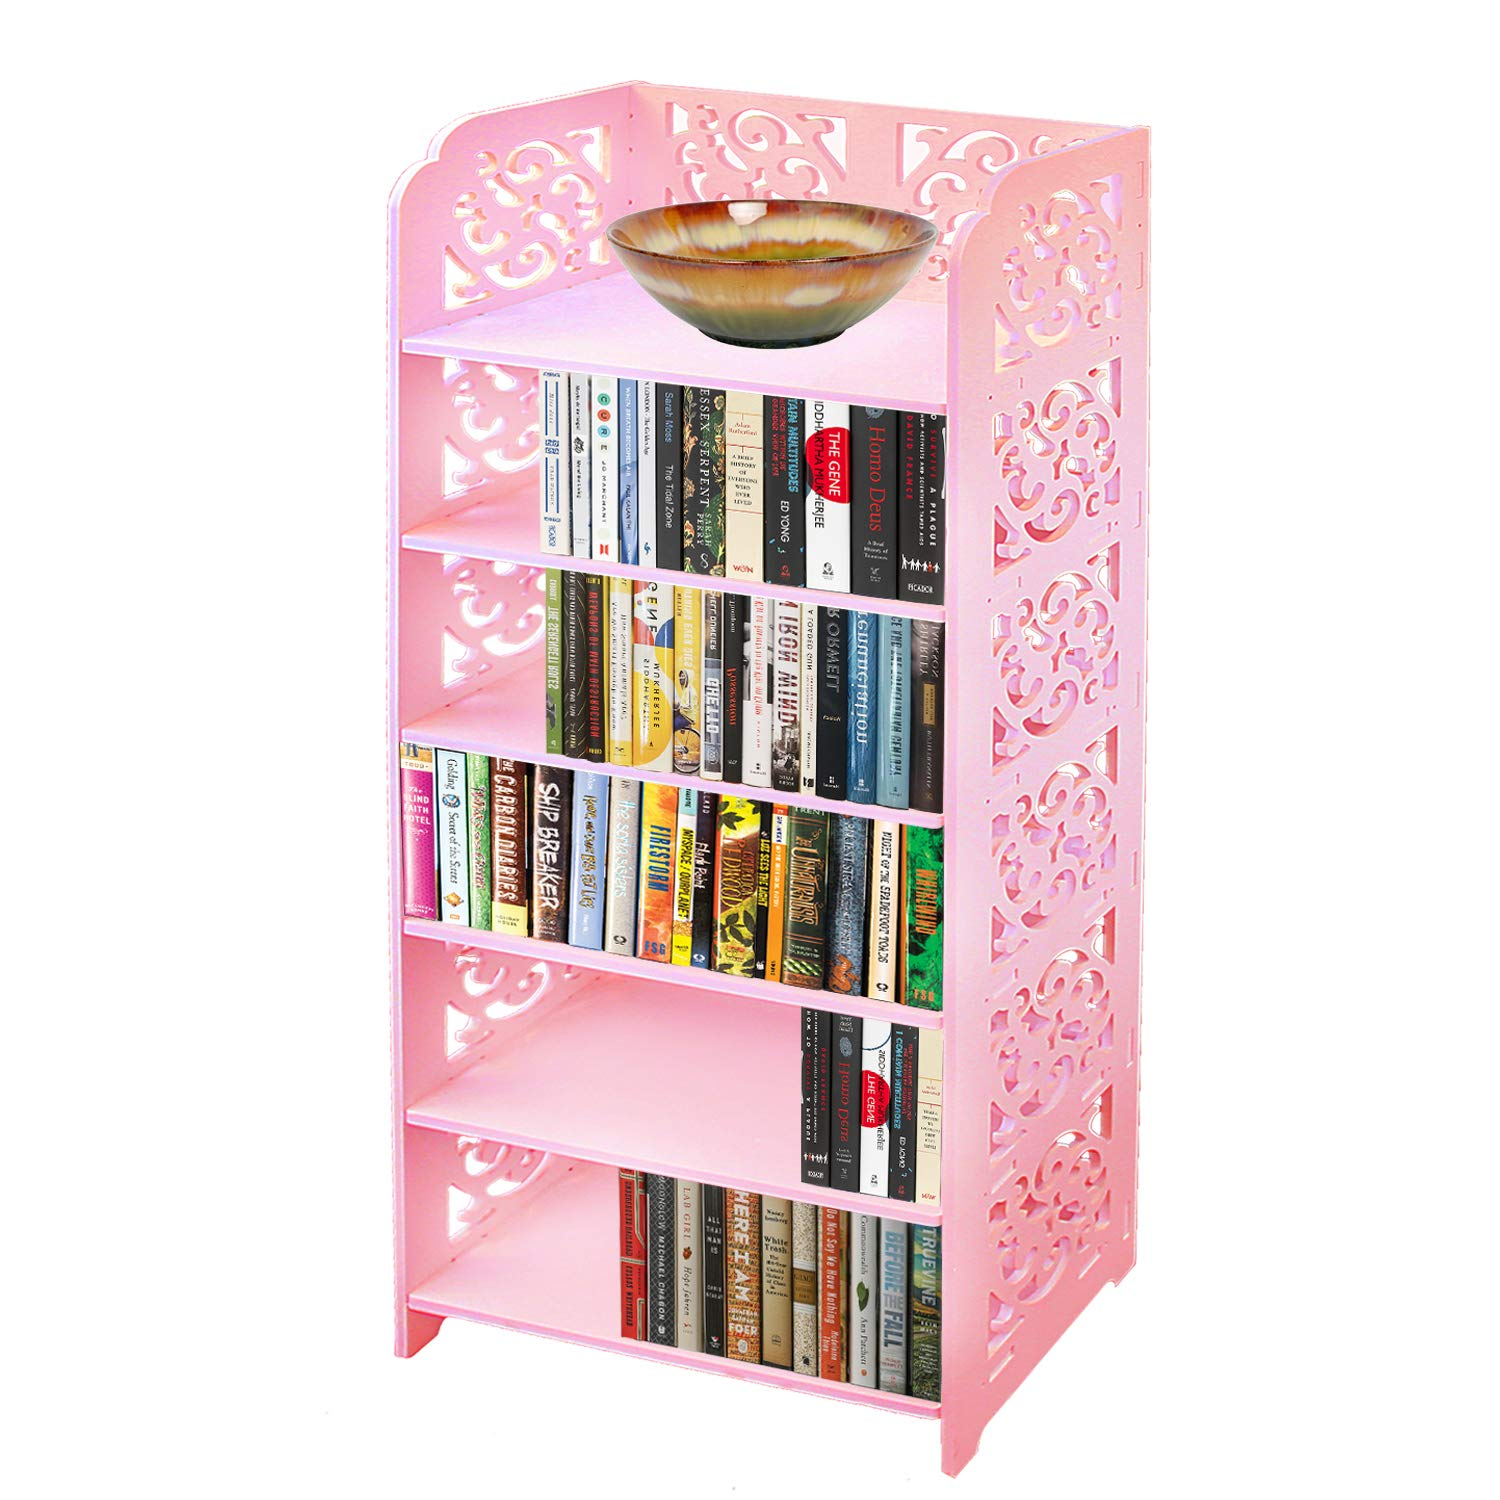 DL furniture WPC Tall 6 Tier Multipurpose Shoe Rack & Book Shelf L16.5 x W9.5 x H38 Environmental Friendly Material | Pink by DL furniture (Image #1)